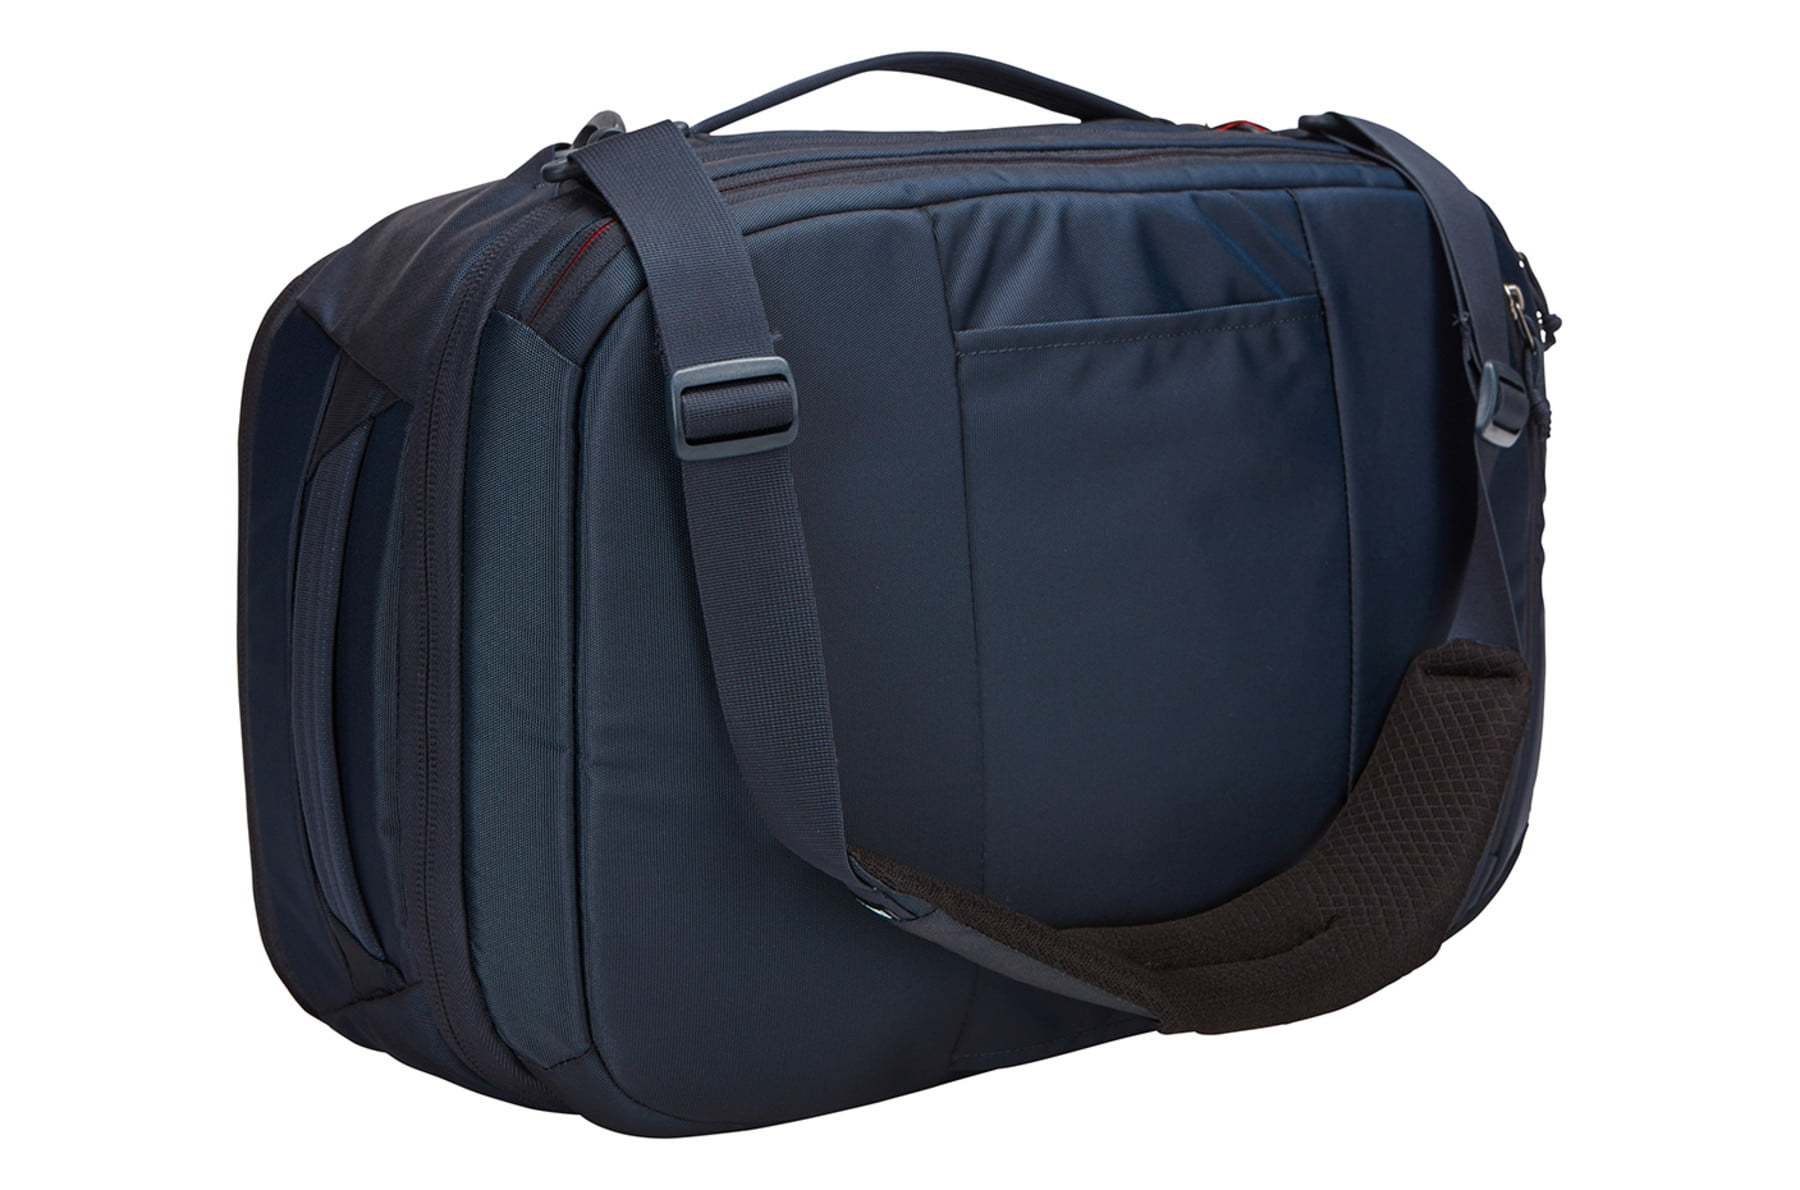 Geanta voiaj Thule Subterra Carry On 40L Mineral 7